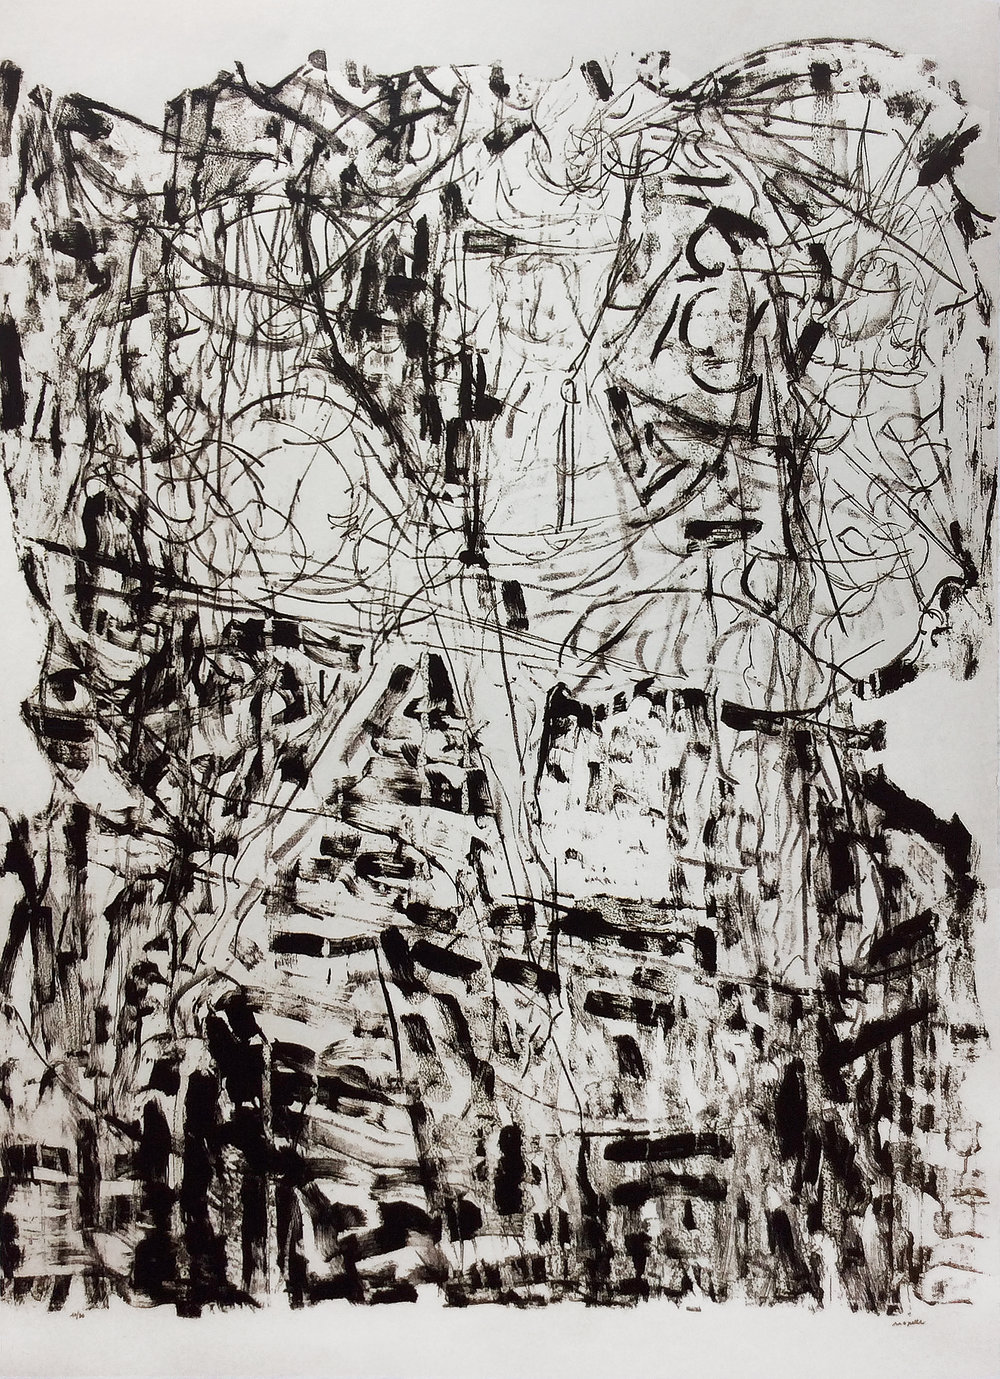 Suite Lachaudière, 1972, 63 x 45.75 in.,	Lithograph on Arches paper (Ed. 12 of 30)